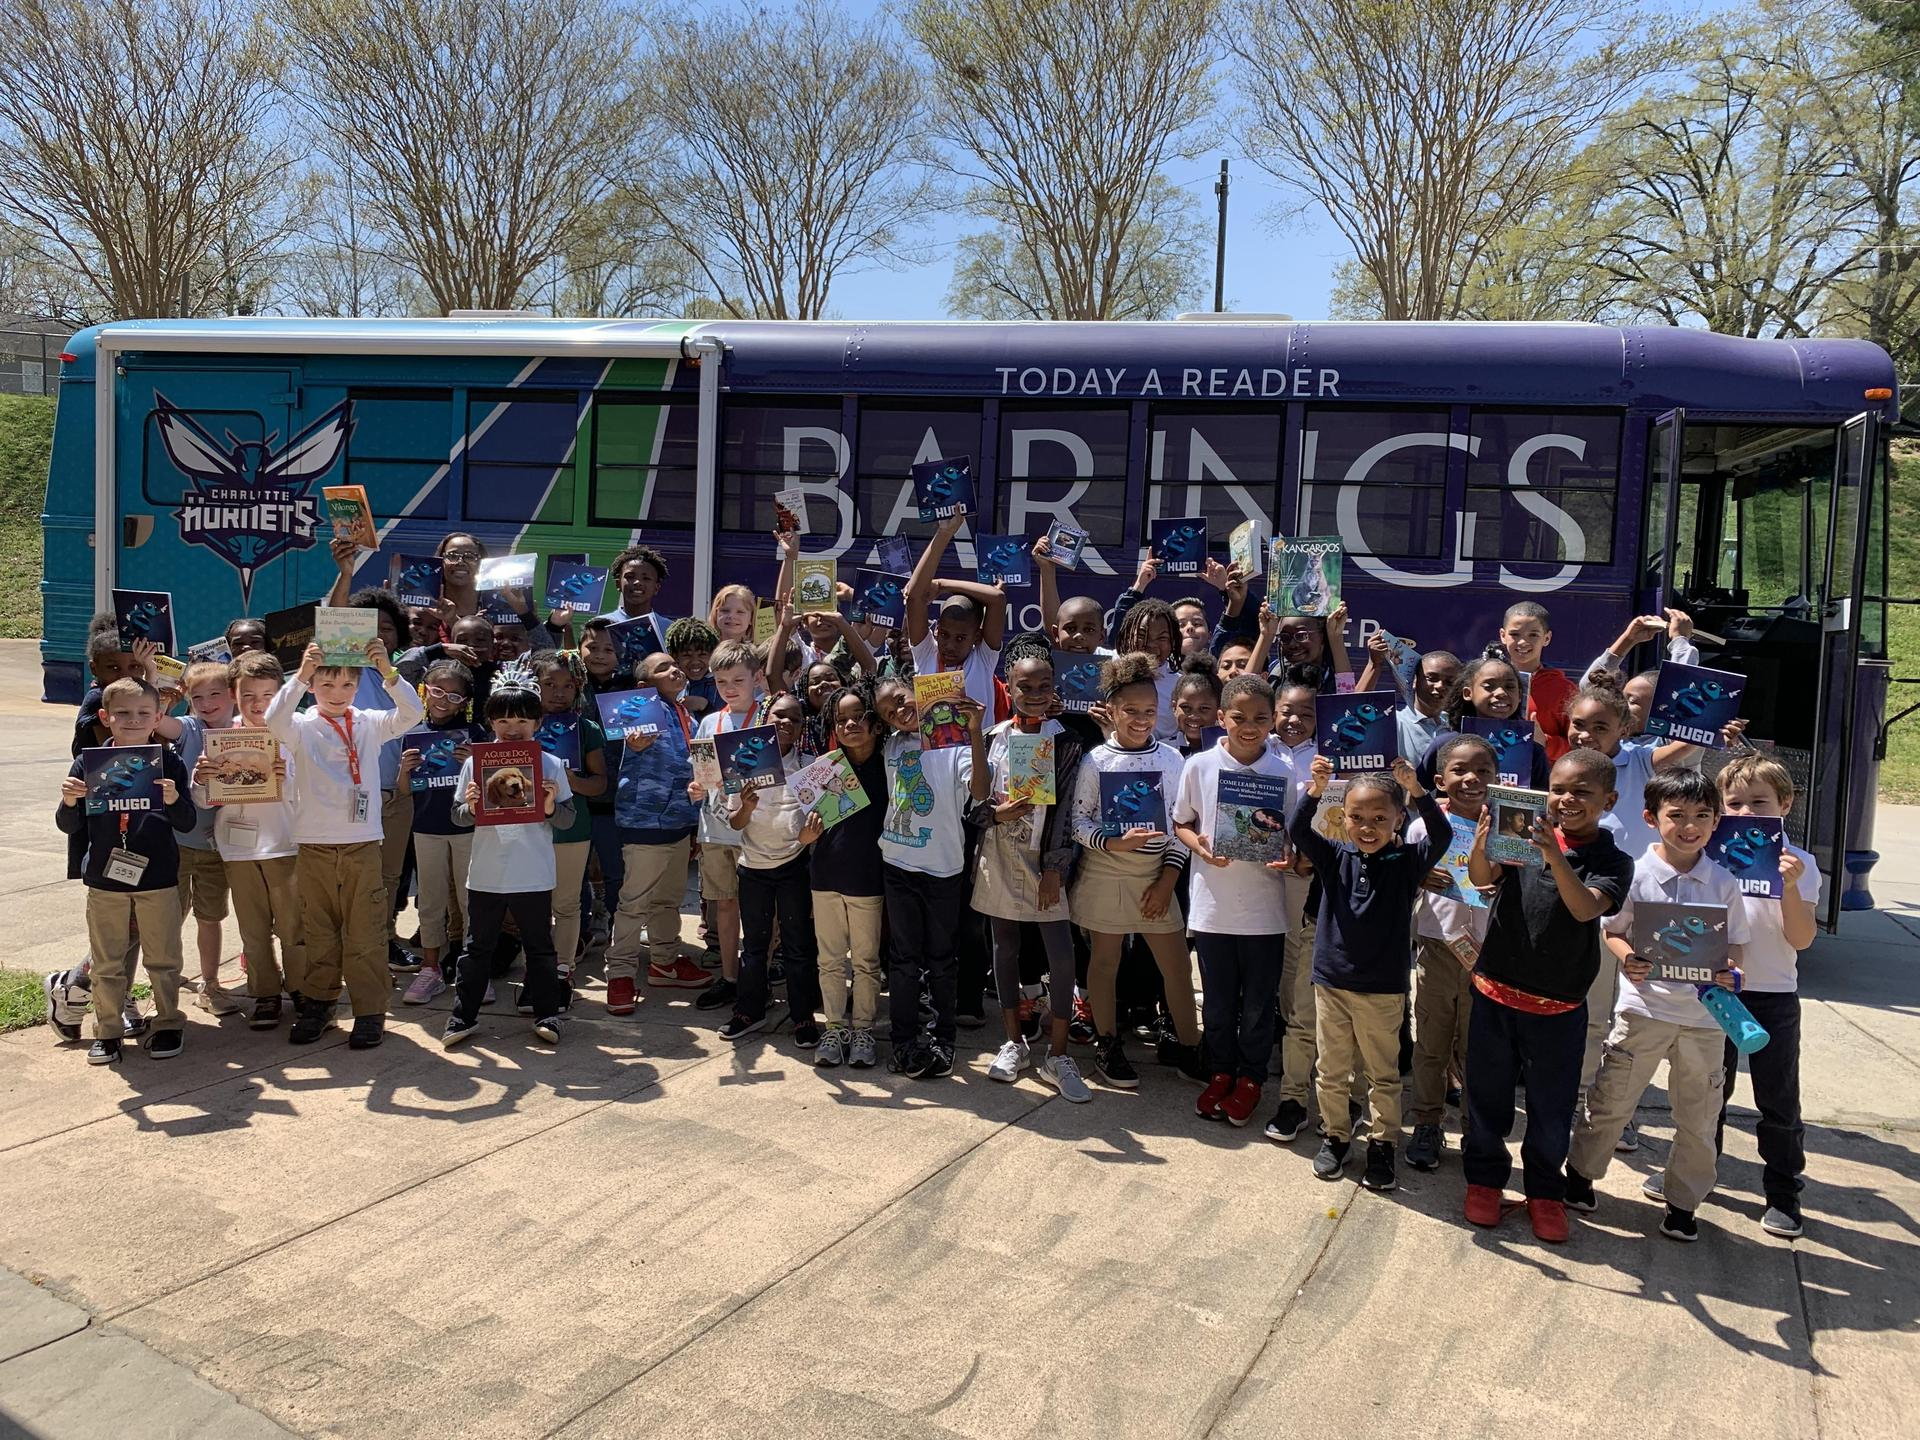 Students with the Barings Book Bus with the free books they were given.